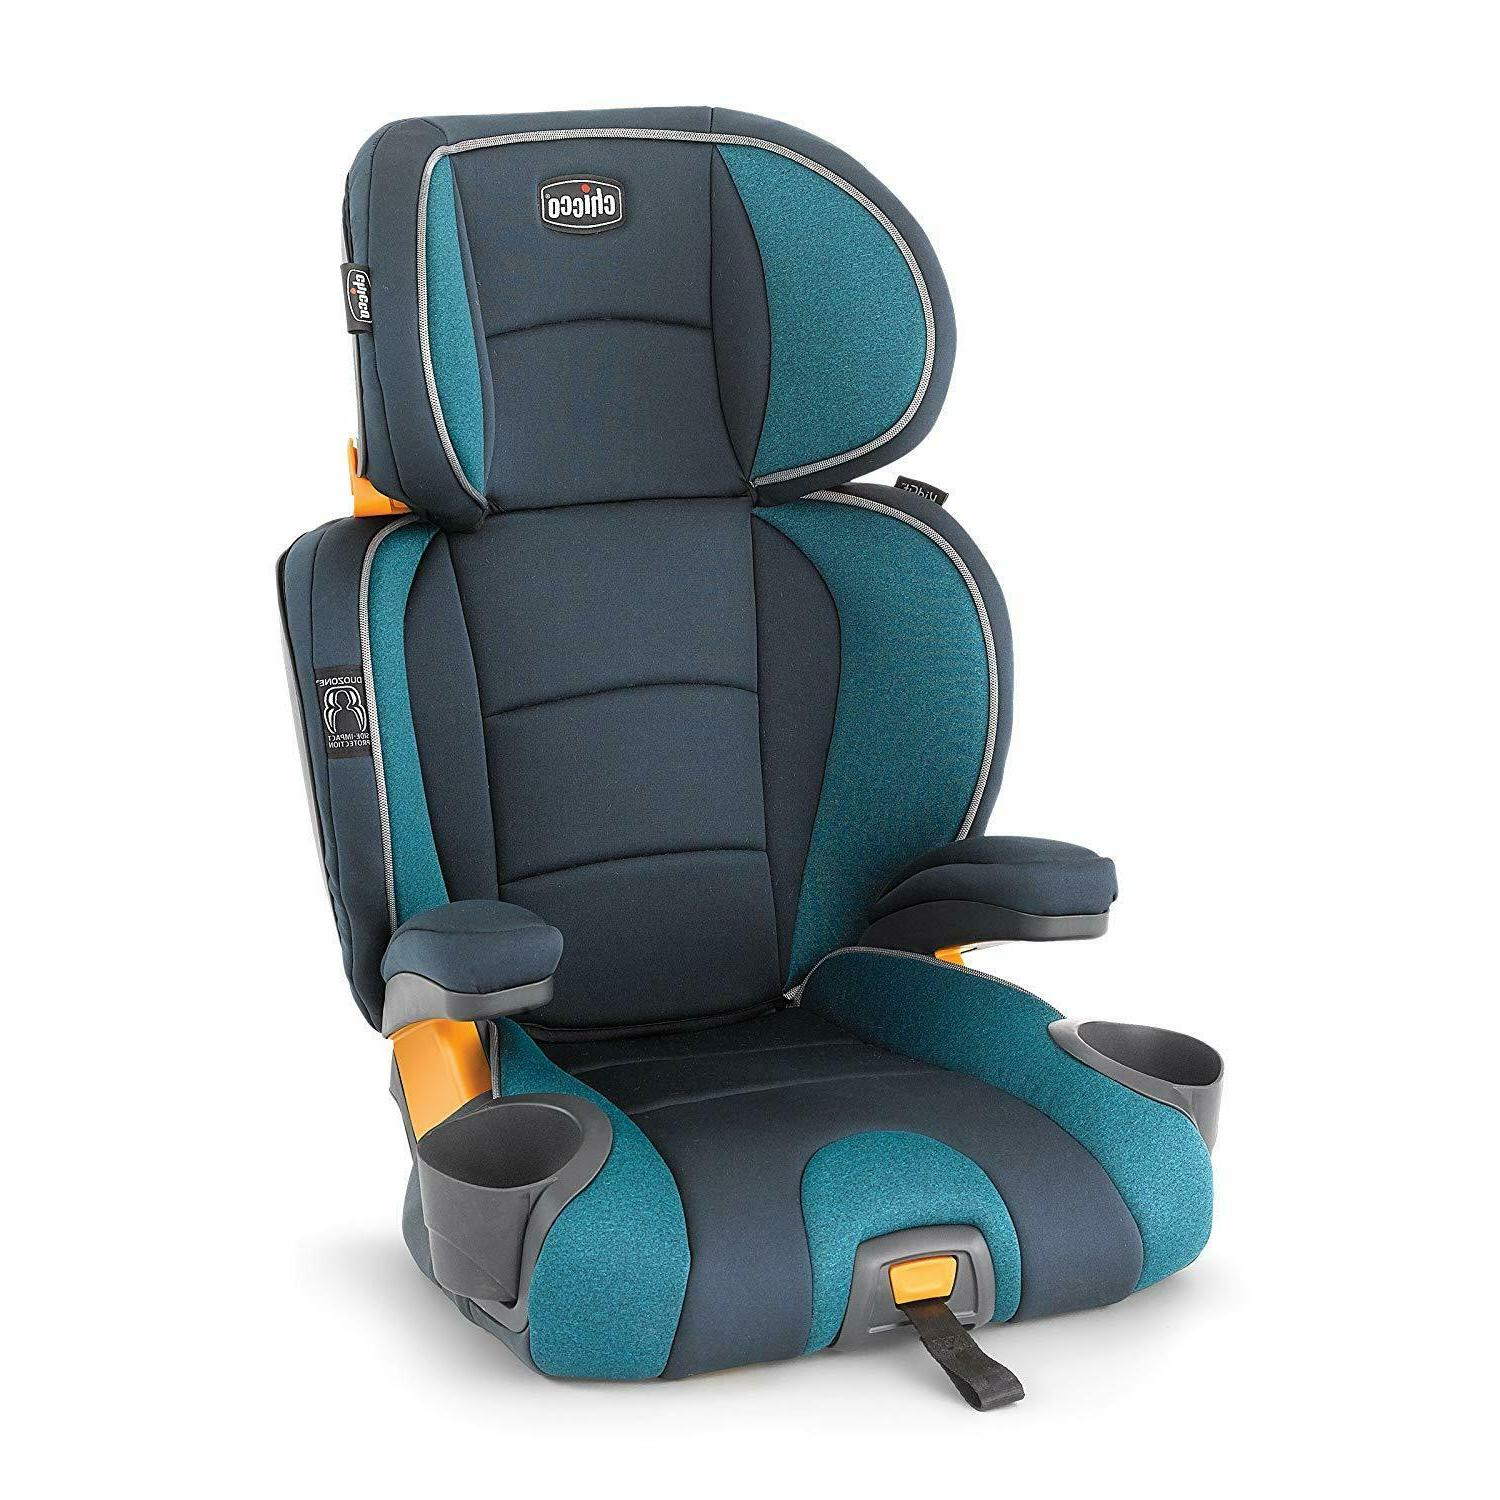 Chicco KidFit 2-in-1 Belt Positioning Booster High Back Car